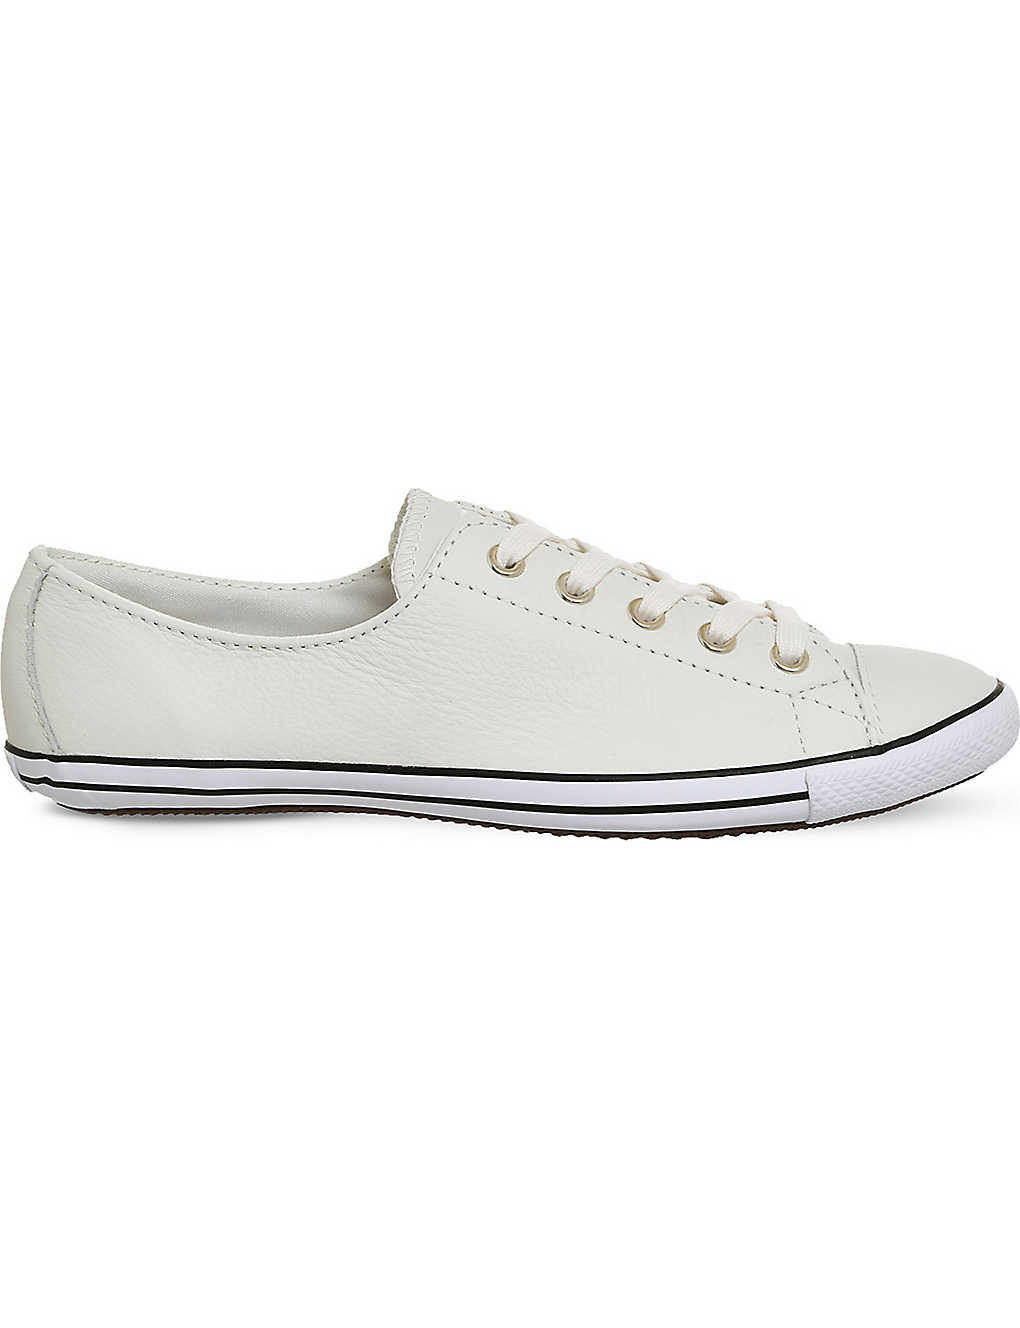 03dce8a82921 ... CT Lite 2 leather trainers zoom ...